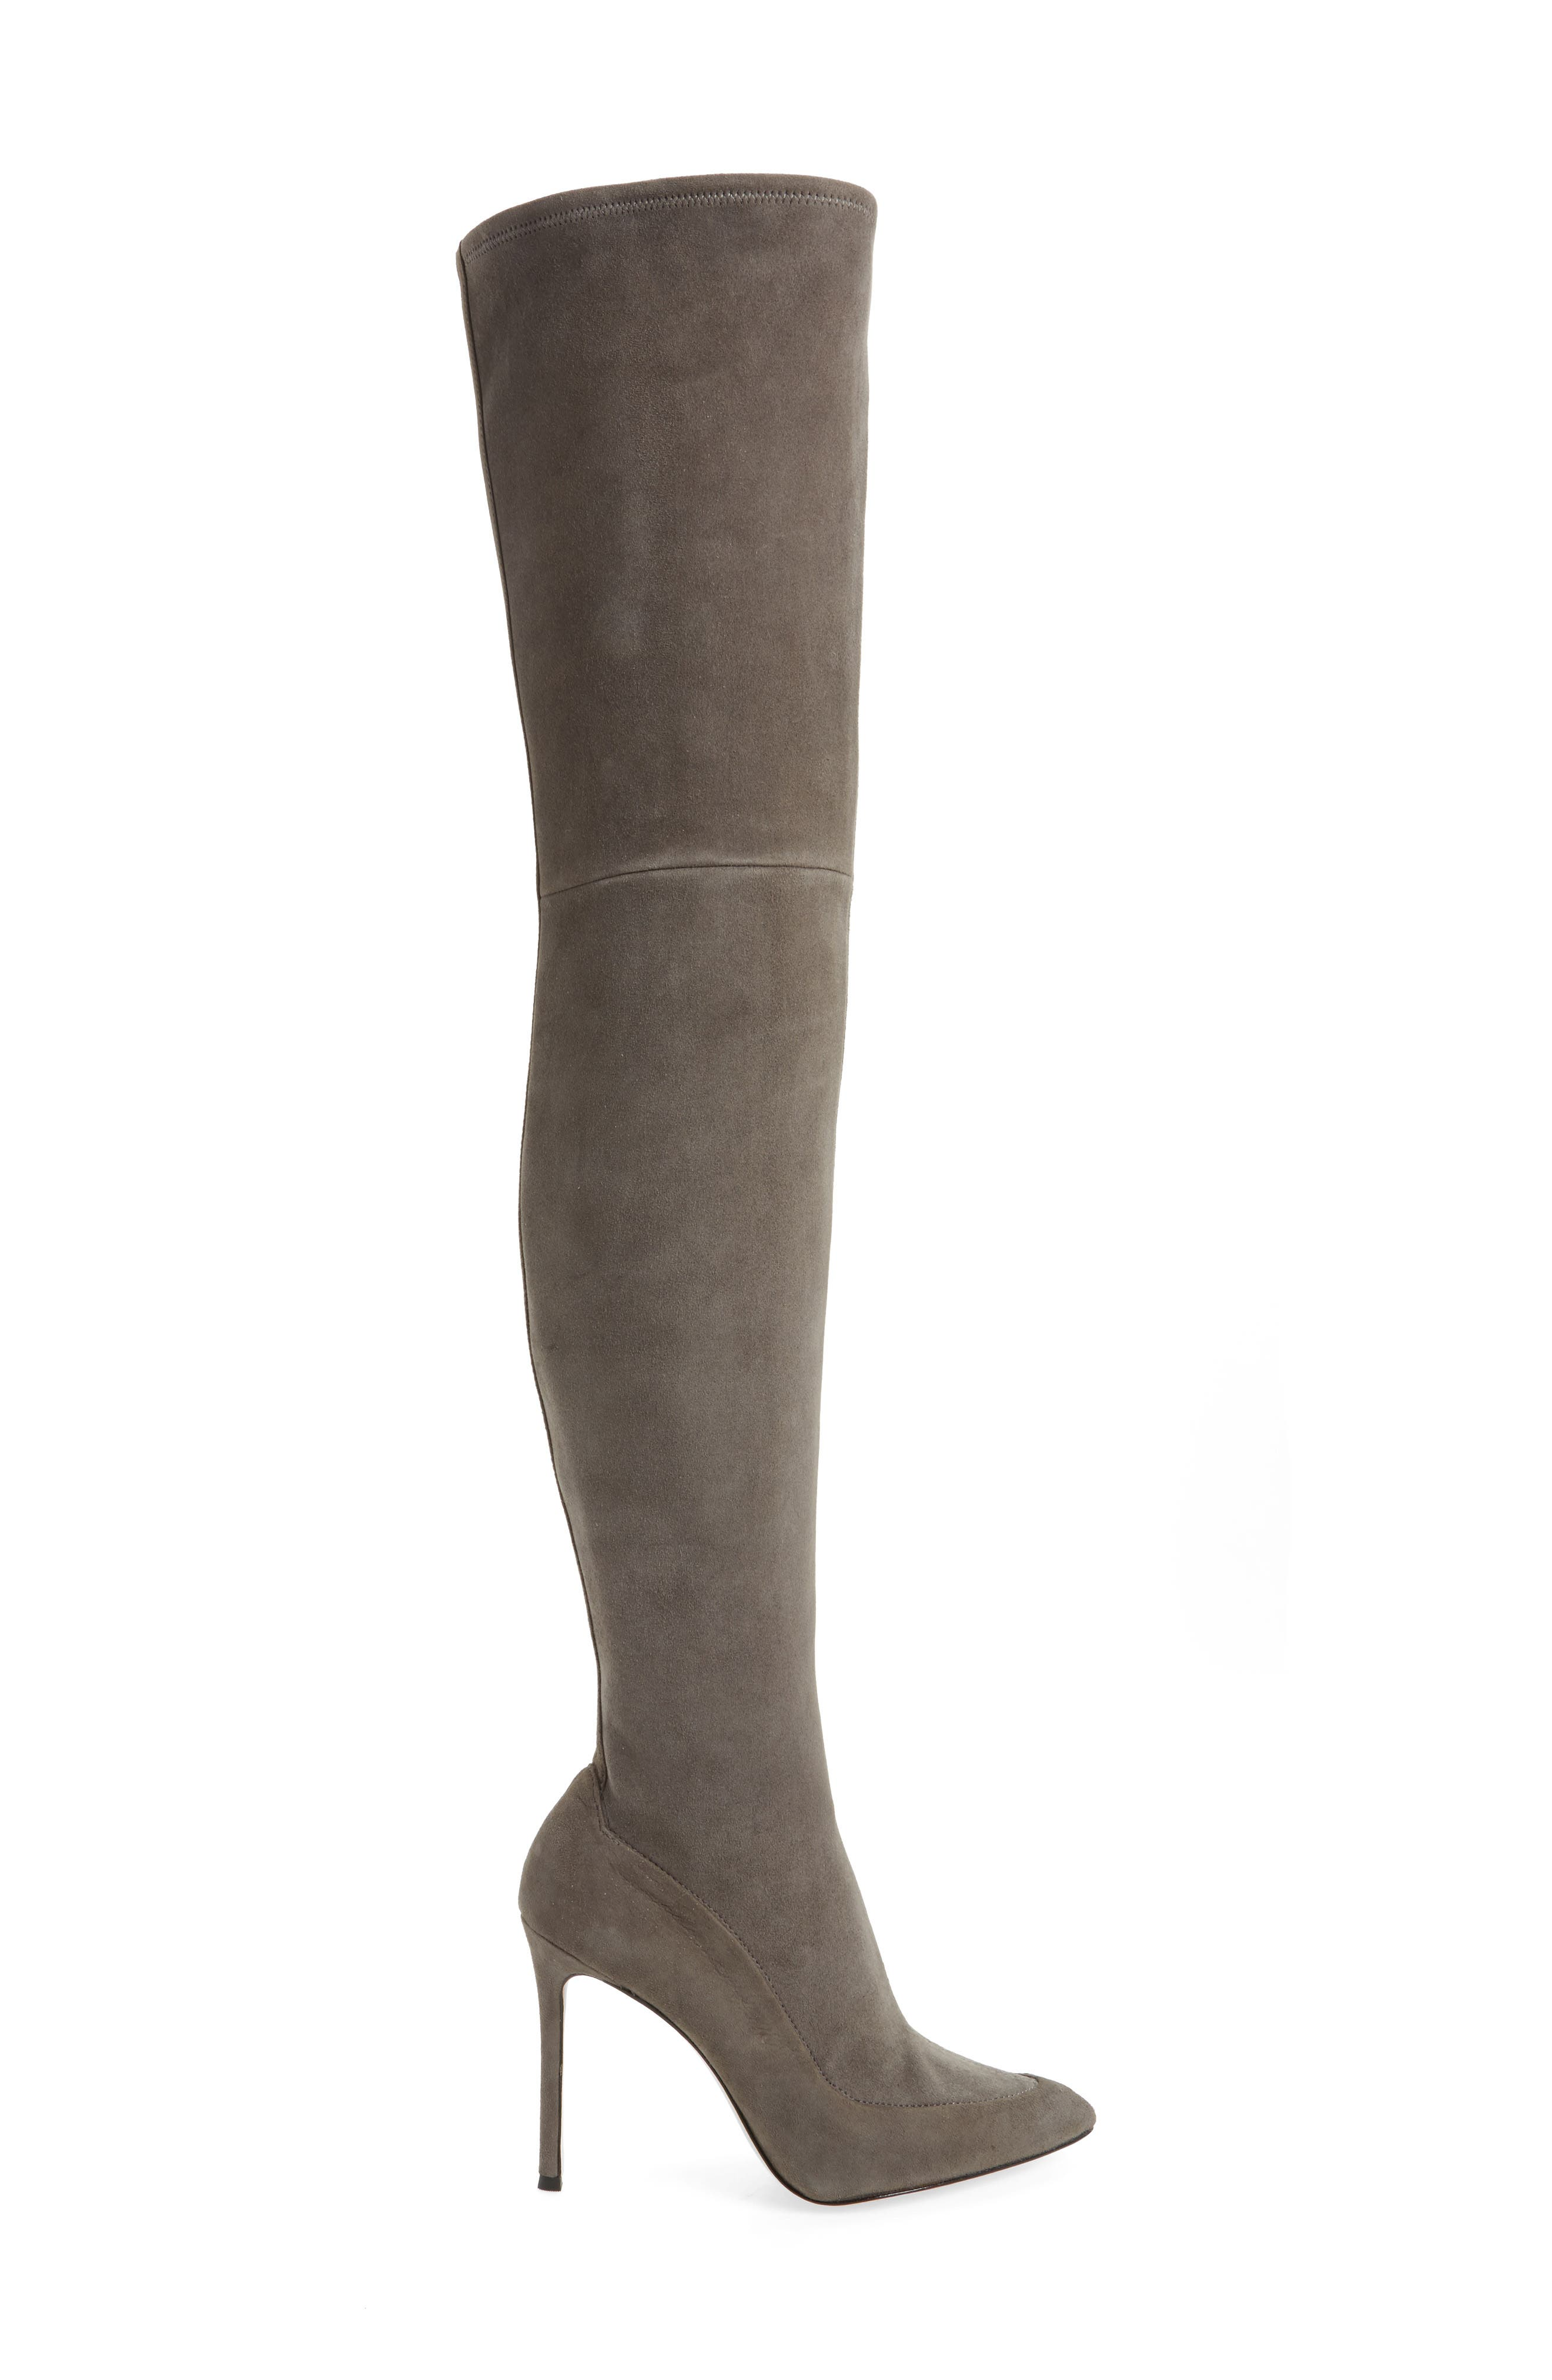 Cassie Thigh High Boot,                             Alternate thumbnail 2, color,                             Anthracite Suede